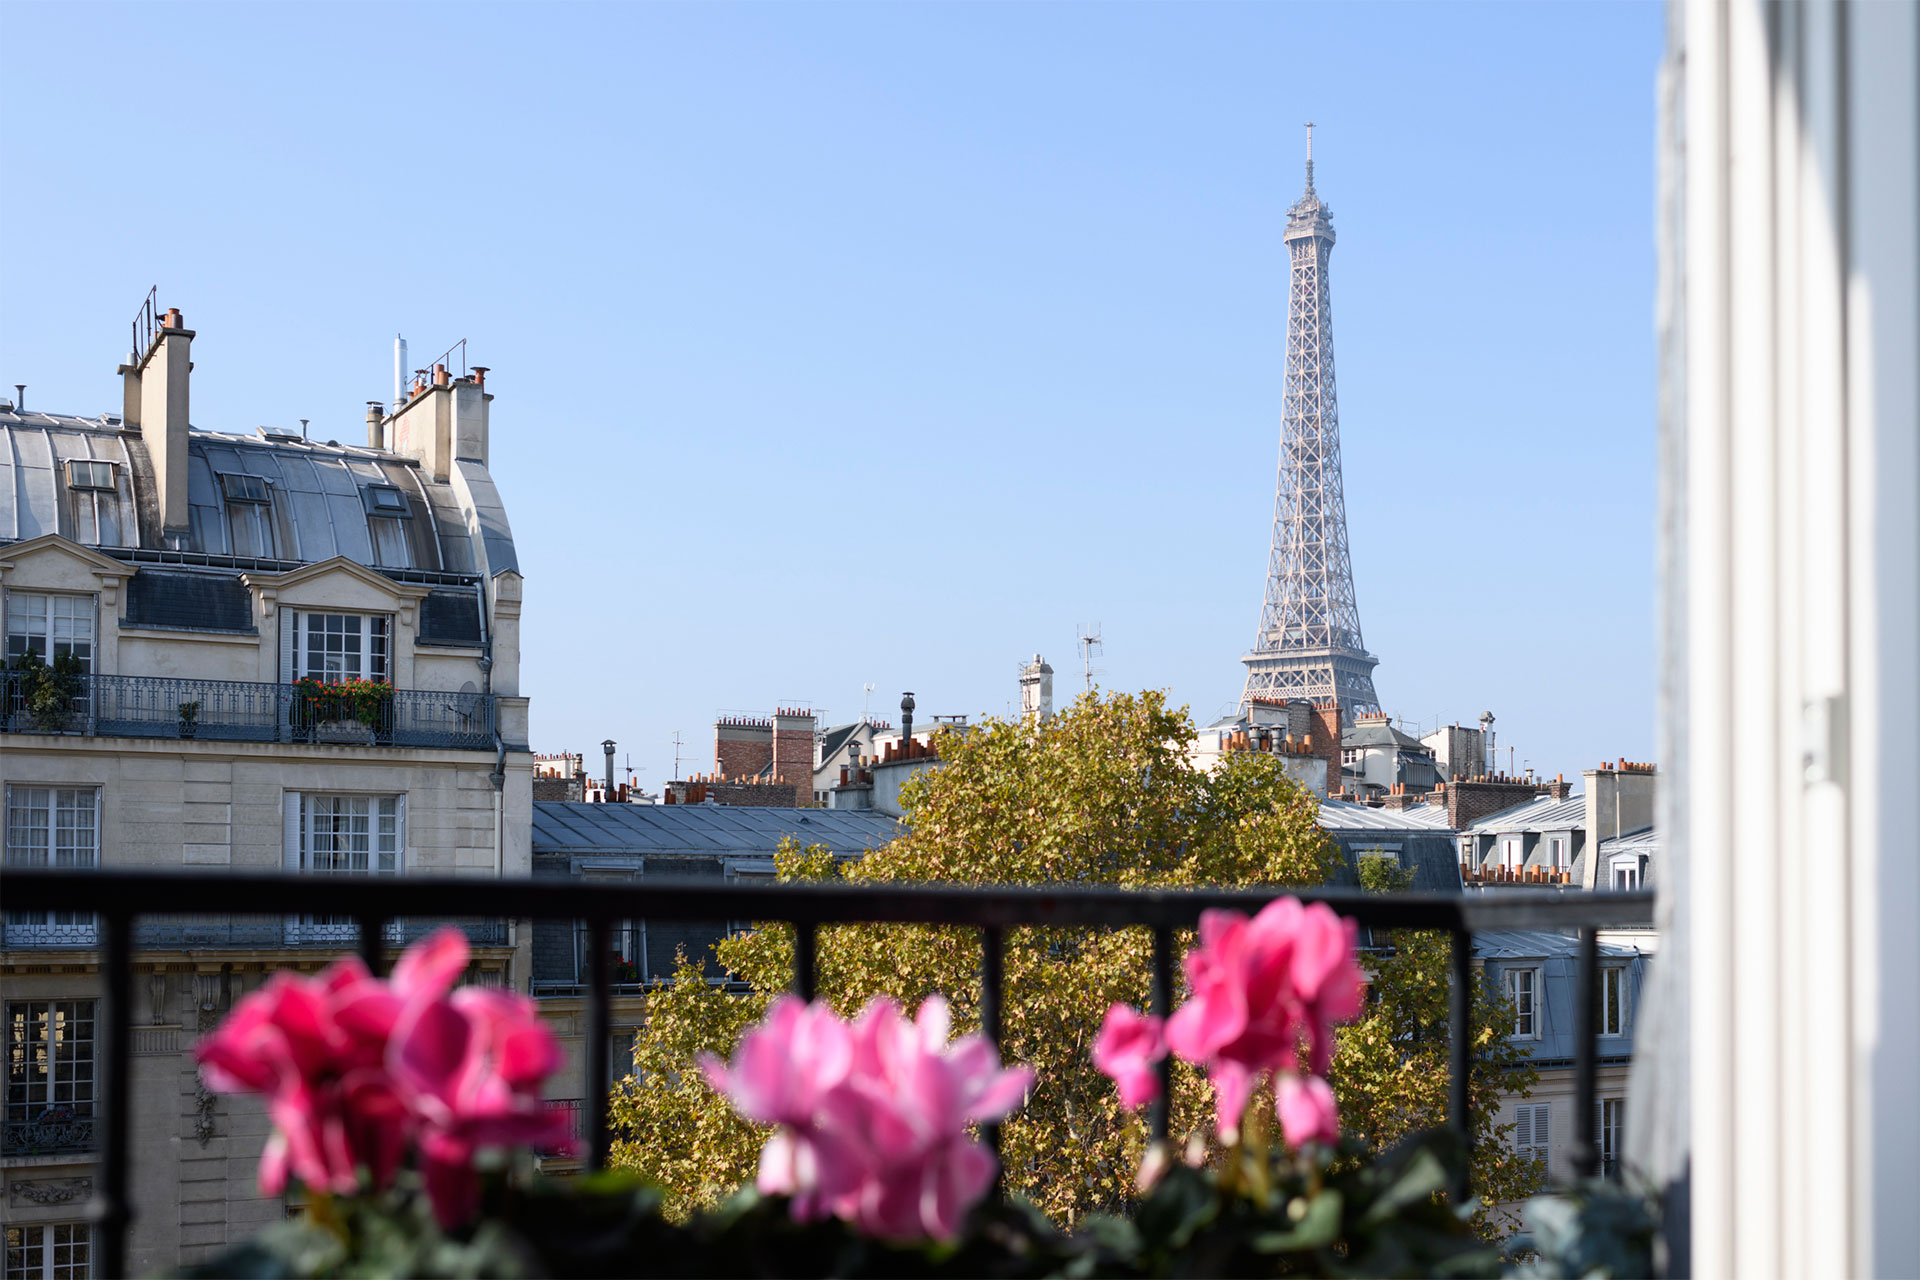 The Eiffel Tower peeking over the Parisian rooftops in the Cremant Paris Perfect rental